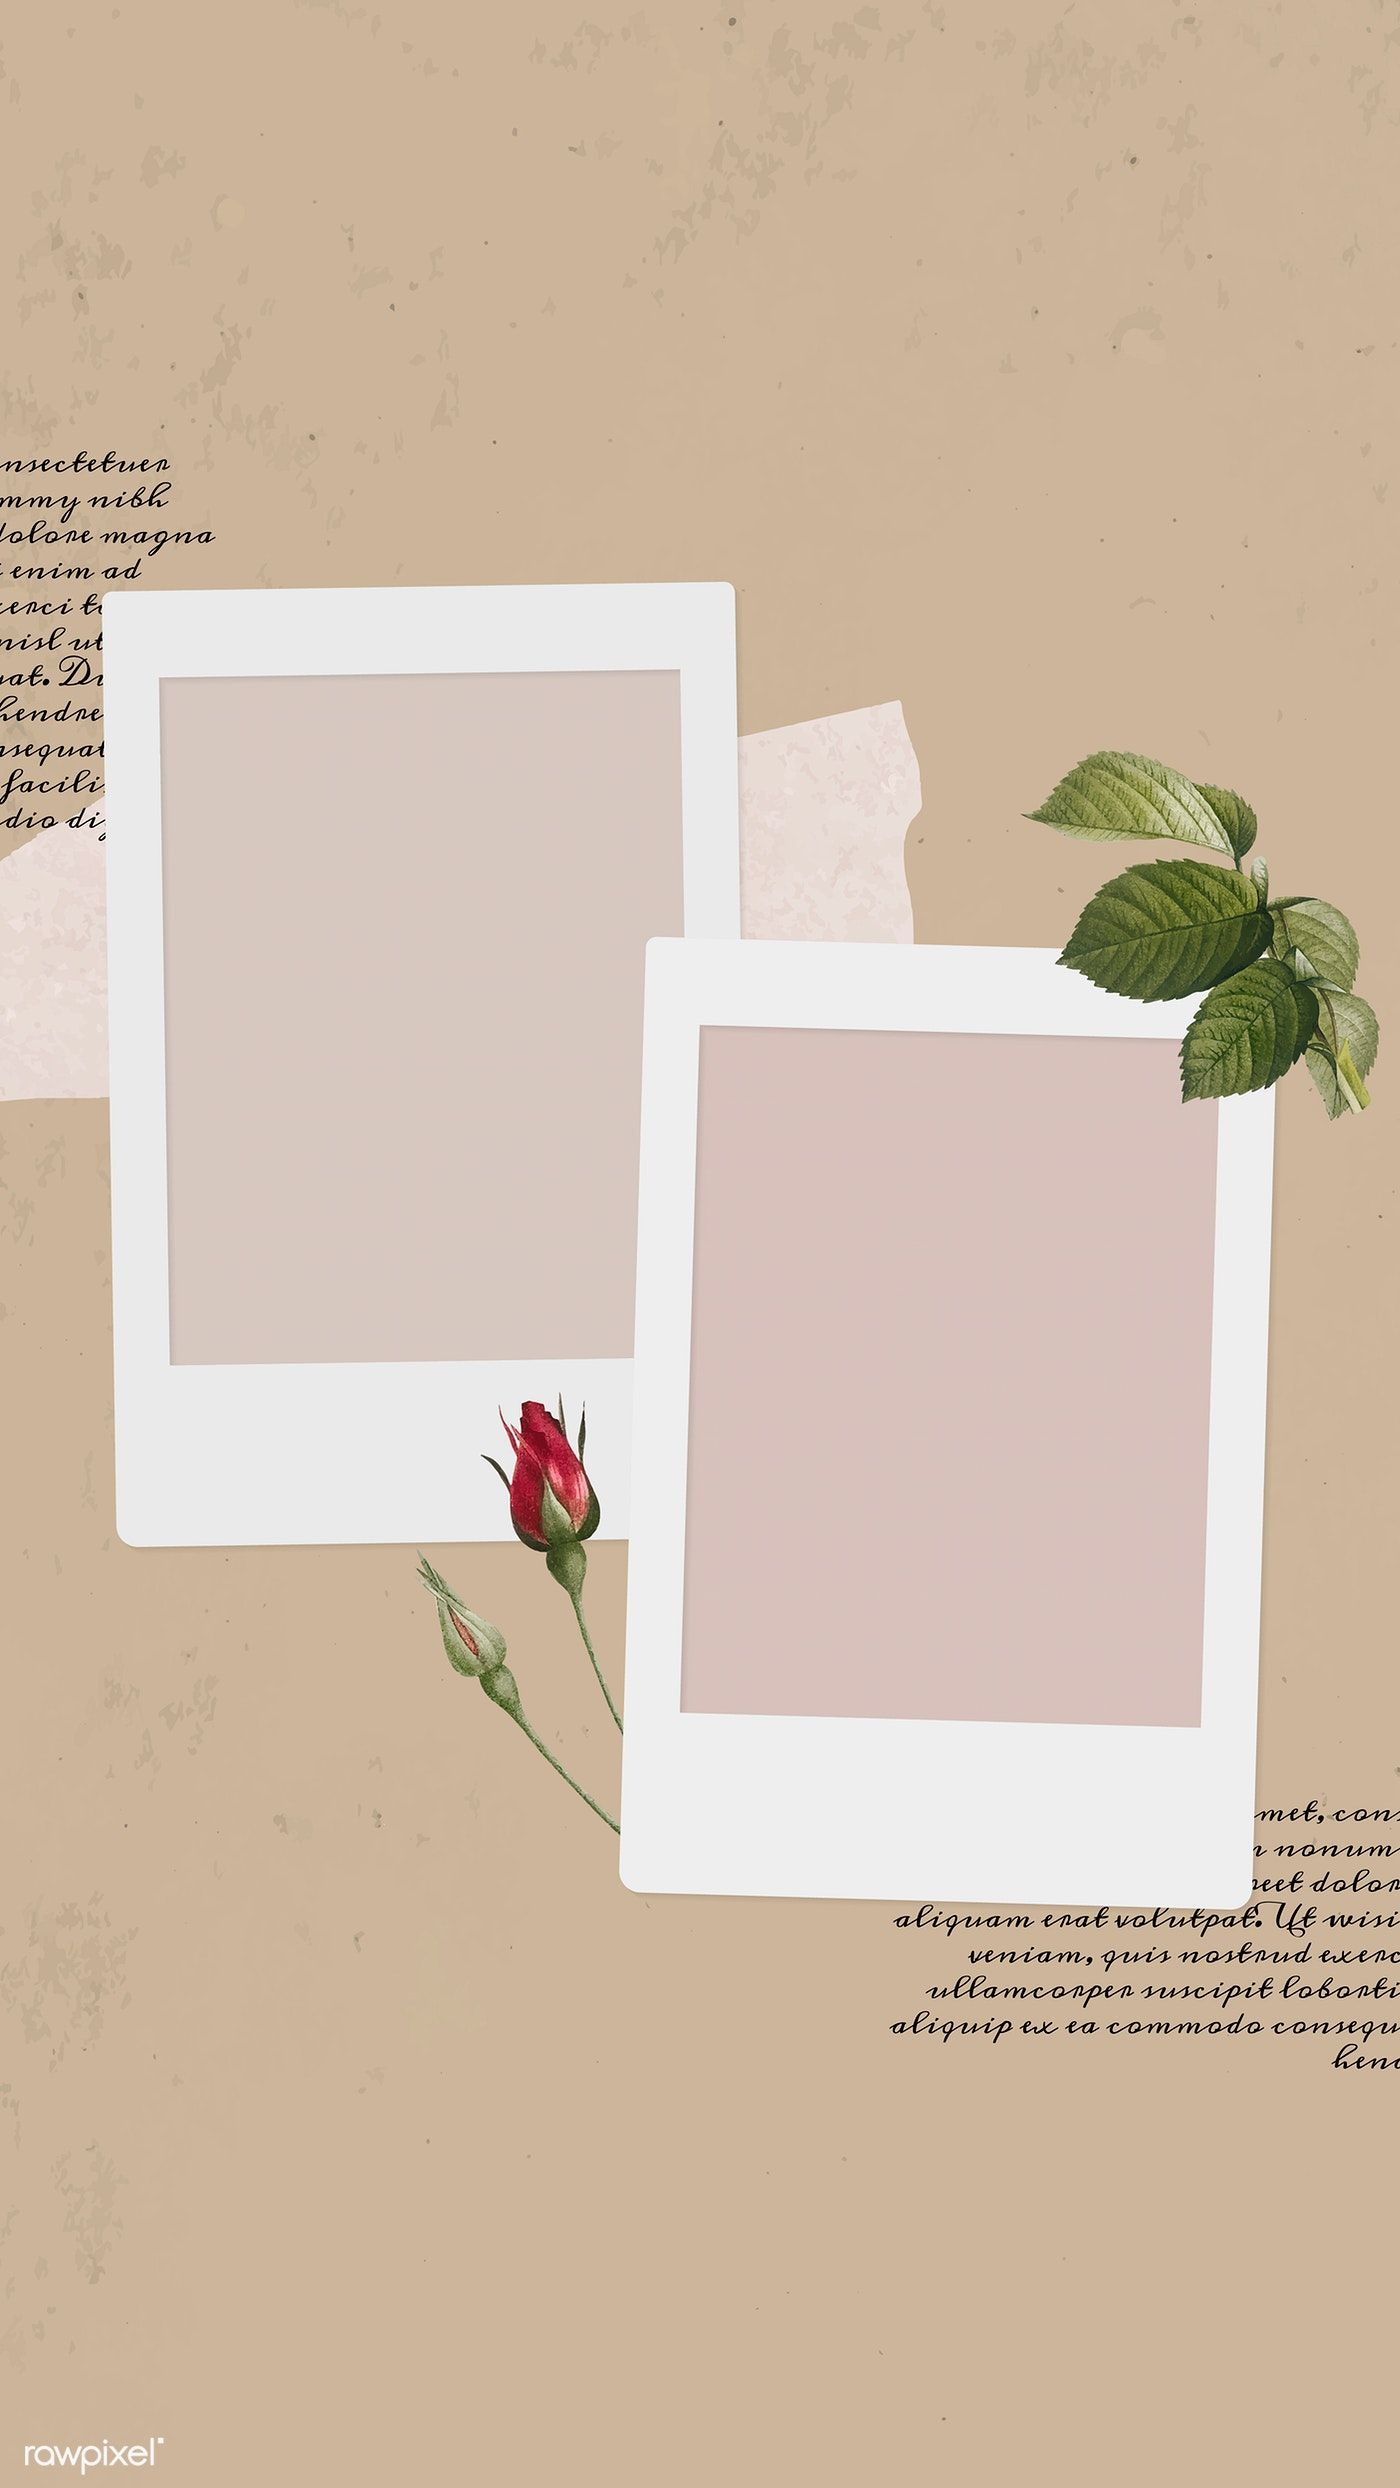 Download premium vector of Blank collage photo frame template vector mobile phone wallpaper by Ning about pastel flowers, Blank collage photo frame template vector, texture flower frame illustration design, collage, and Blank collage photo frame copy space 1217680